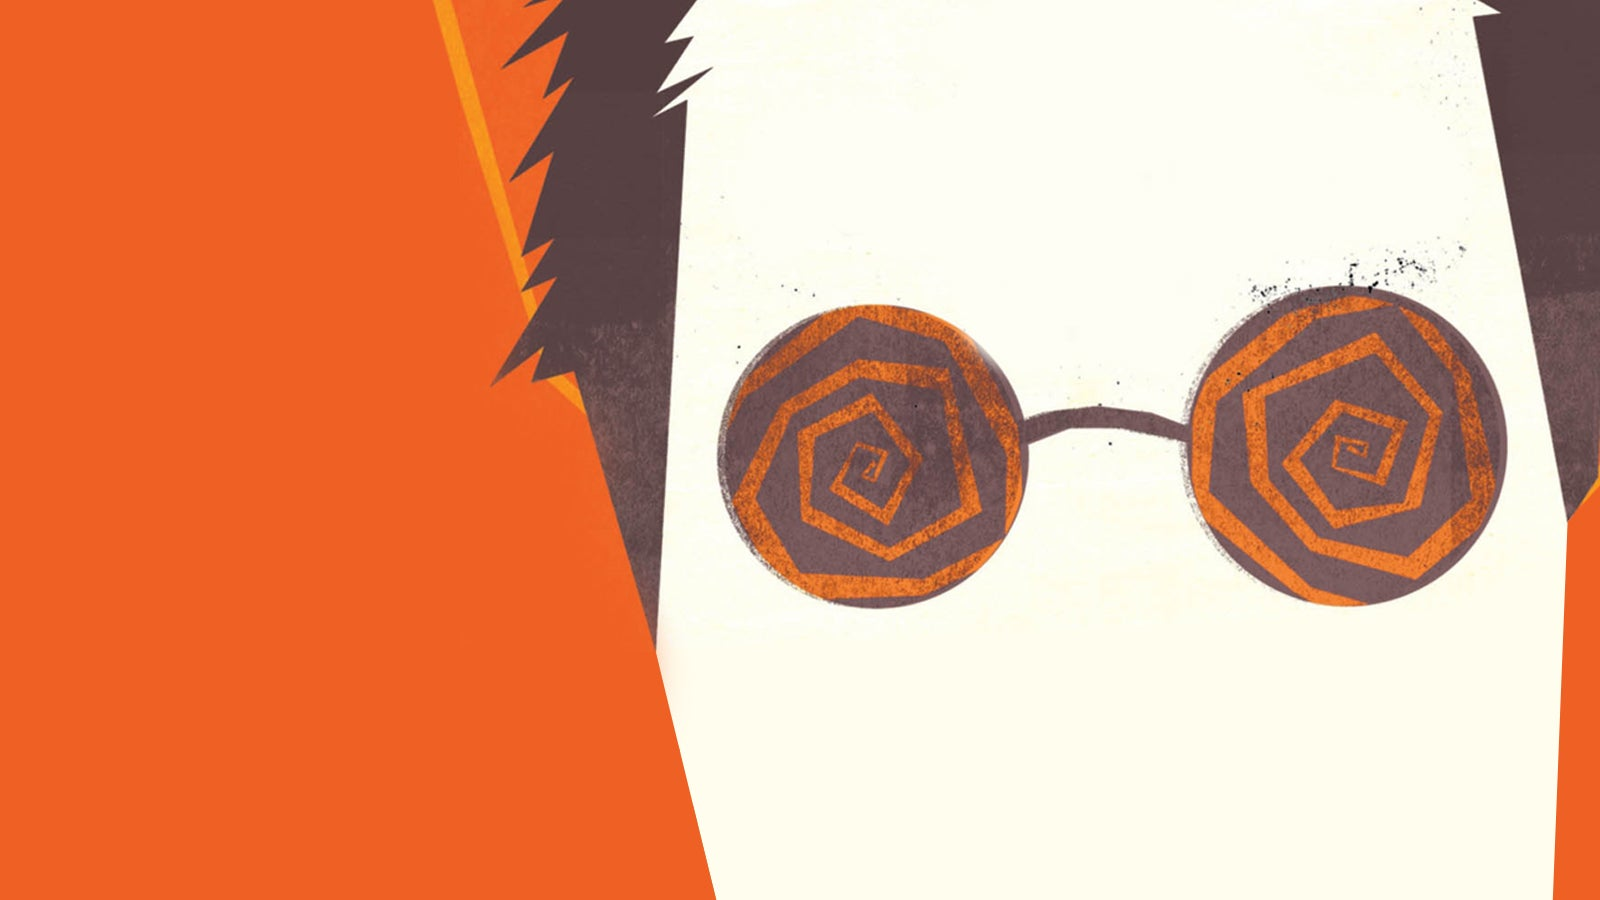 Illustration taken from the front cover of The Psychopath Test showing a man wearing glasses with spirals on the lenses